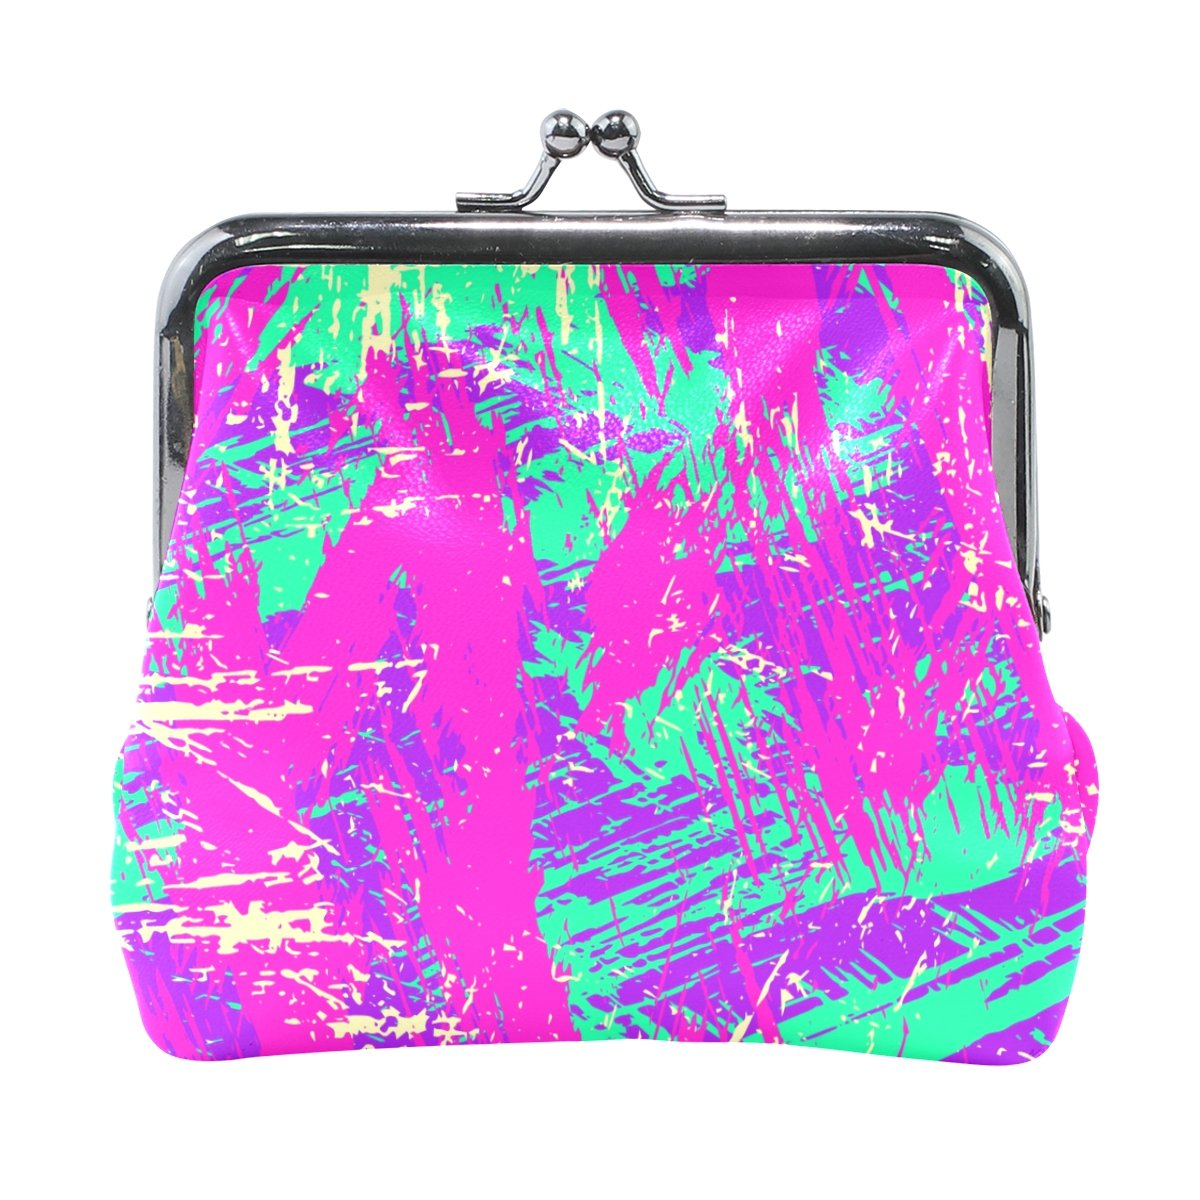 Coin Purse Graffiti Colorful Wallet Buckle Clutch Handbag For Women Girls Gift